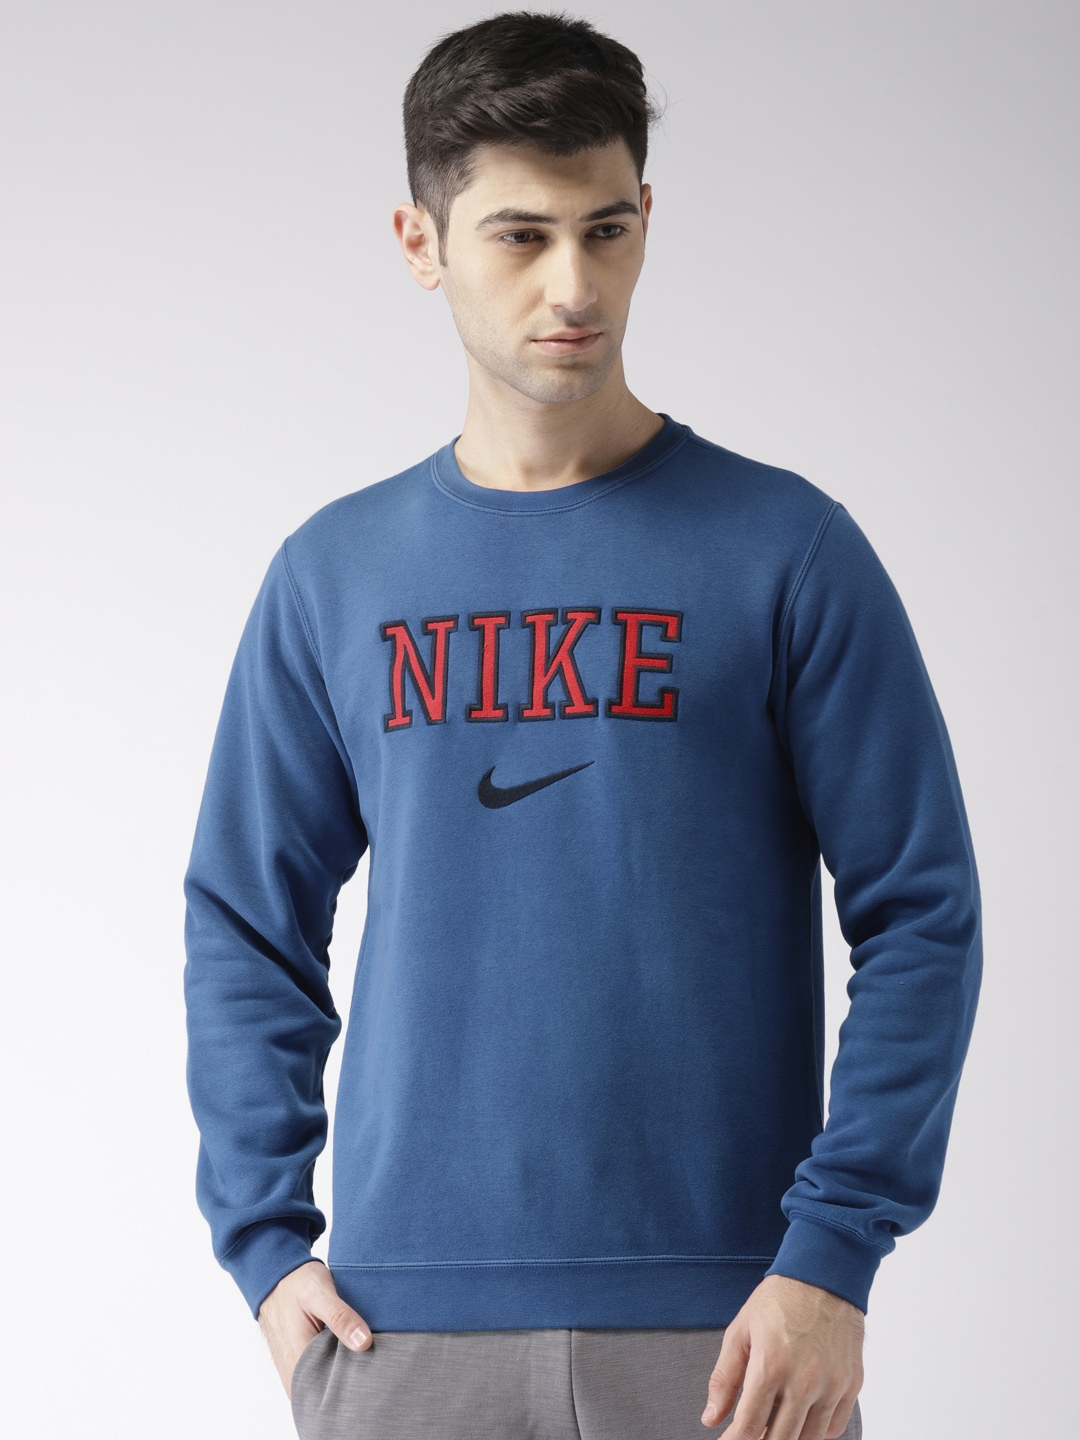 03badea281 Nike - Shop for Nike Apparels Online in India | Myntra